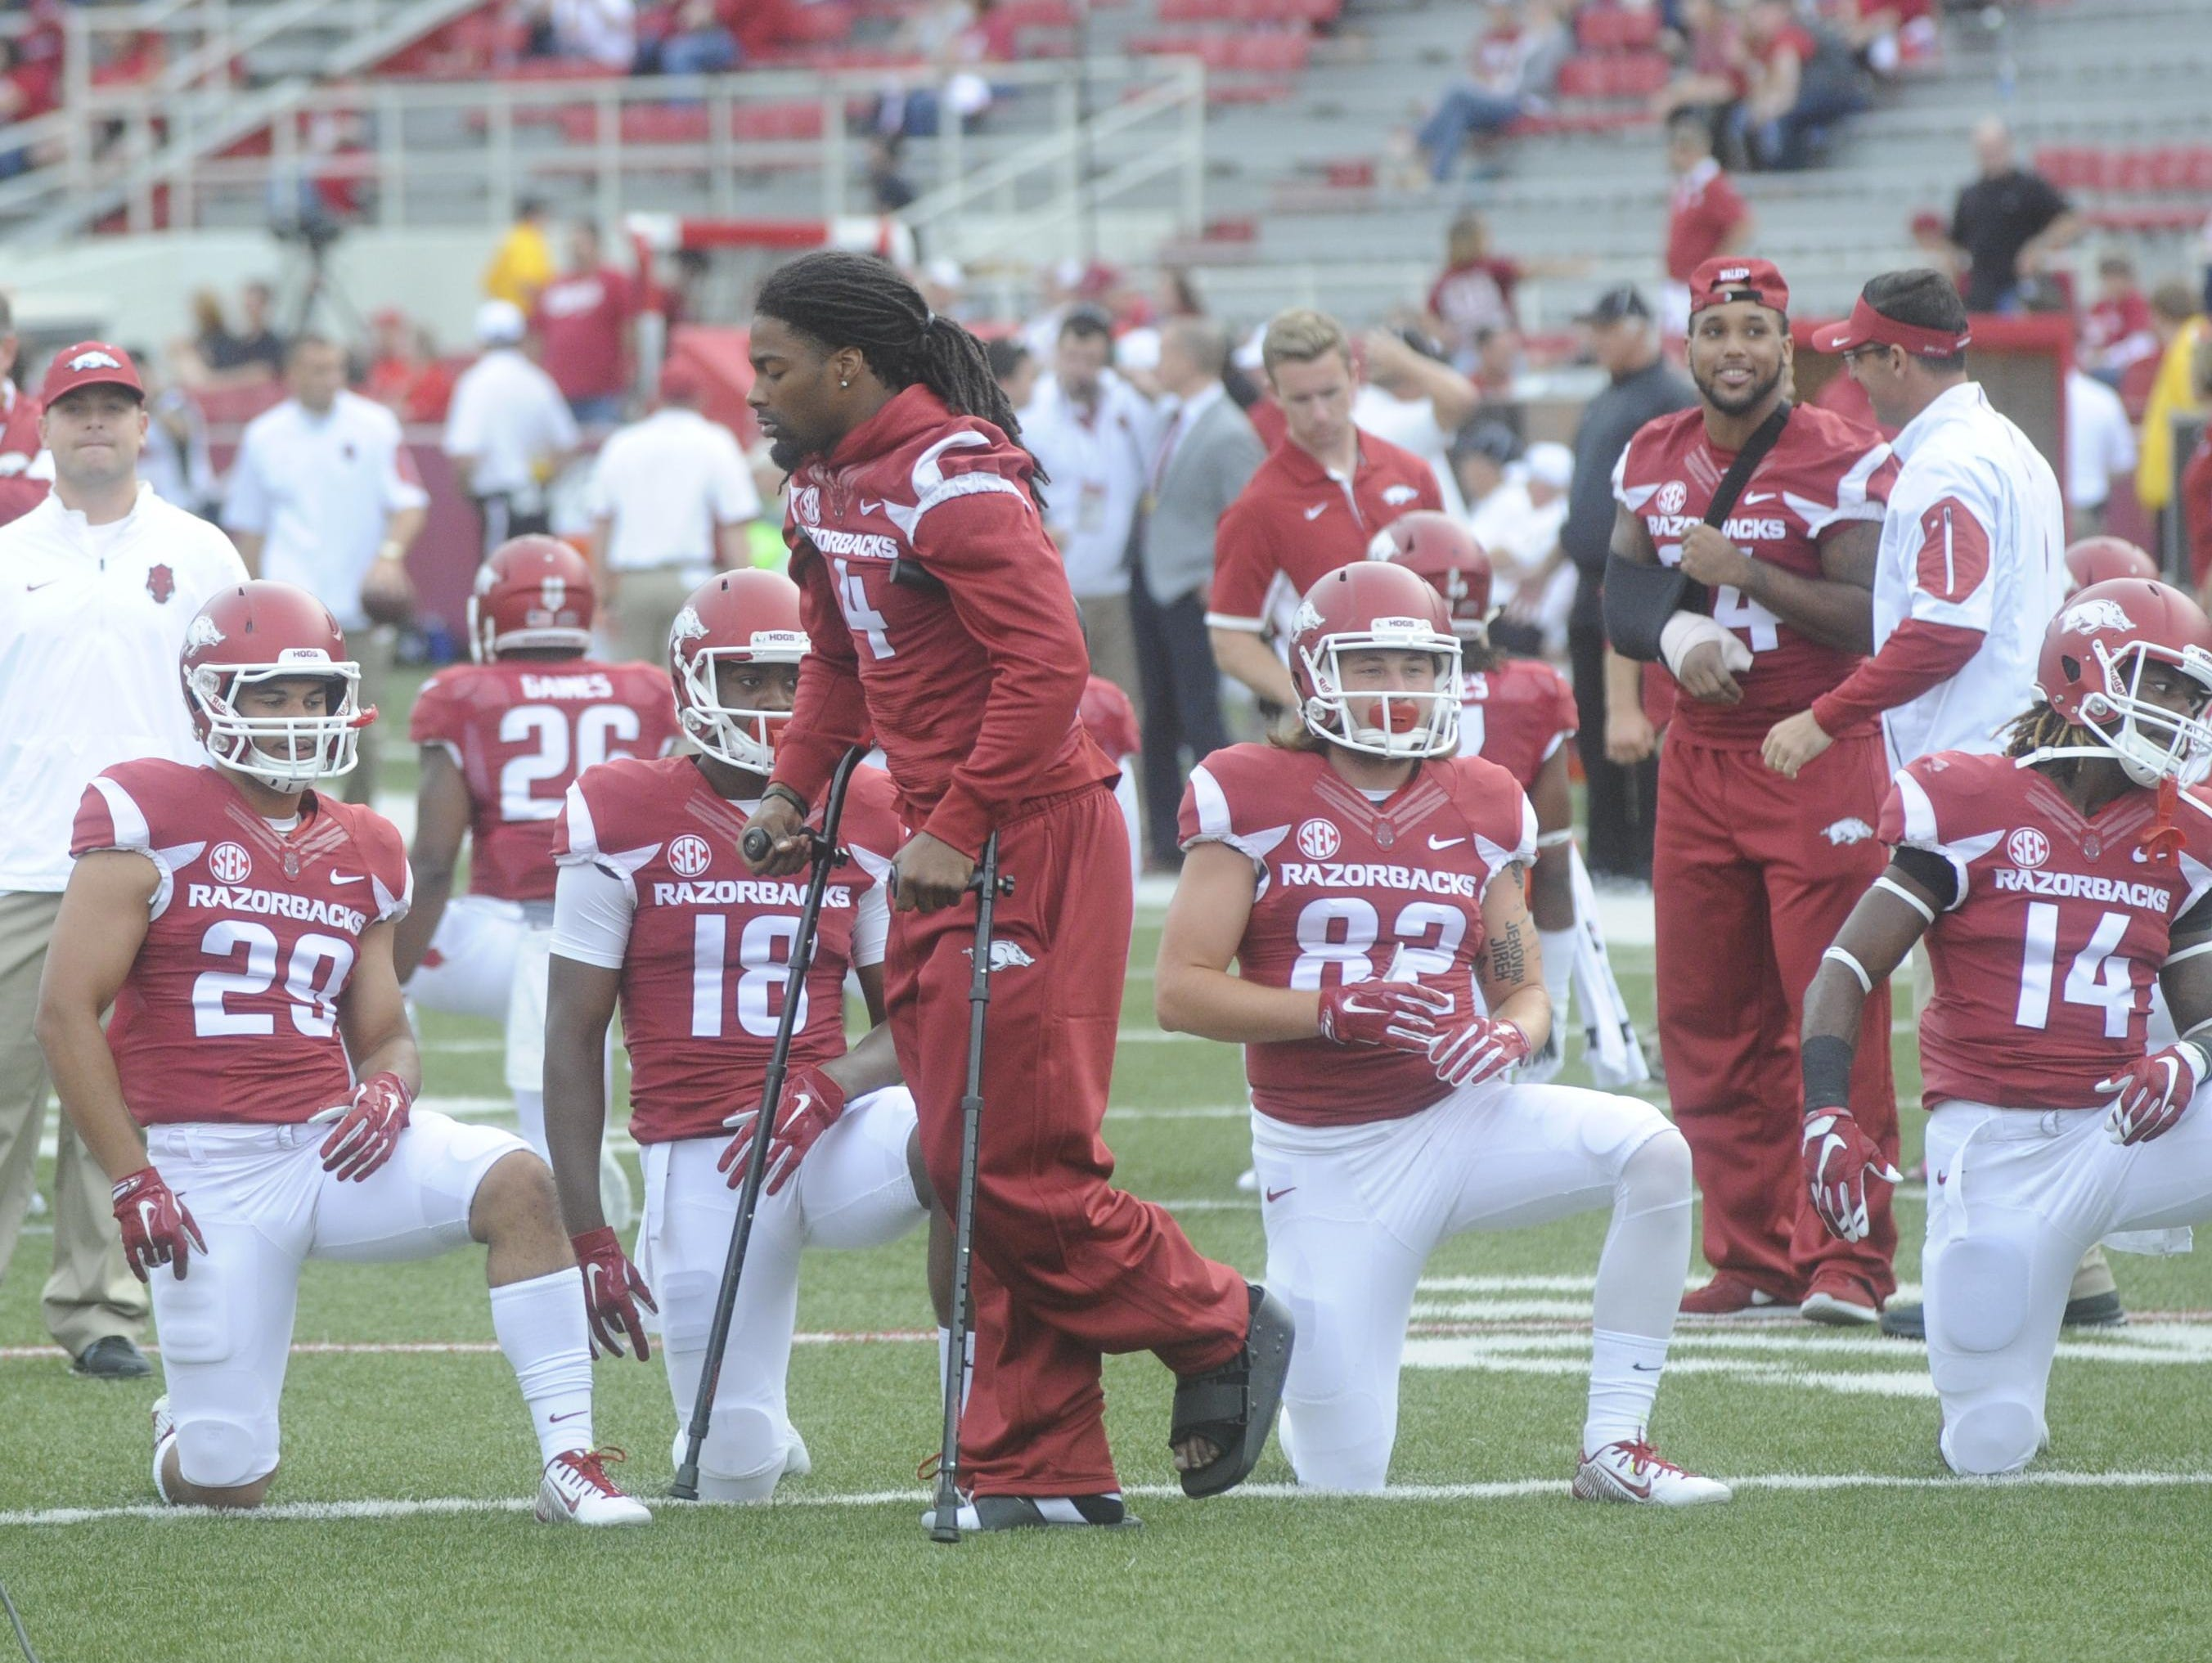 Arkansas' Keon Hatcher (4) joins teammates during pre-game warm-ups before playing Texas Tech on Saturday in Fayetteville. Hatcher is just one of several Razorbacks starters to suffer significant injury this season.